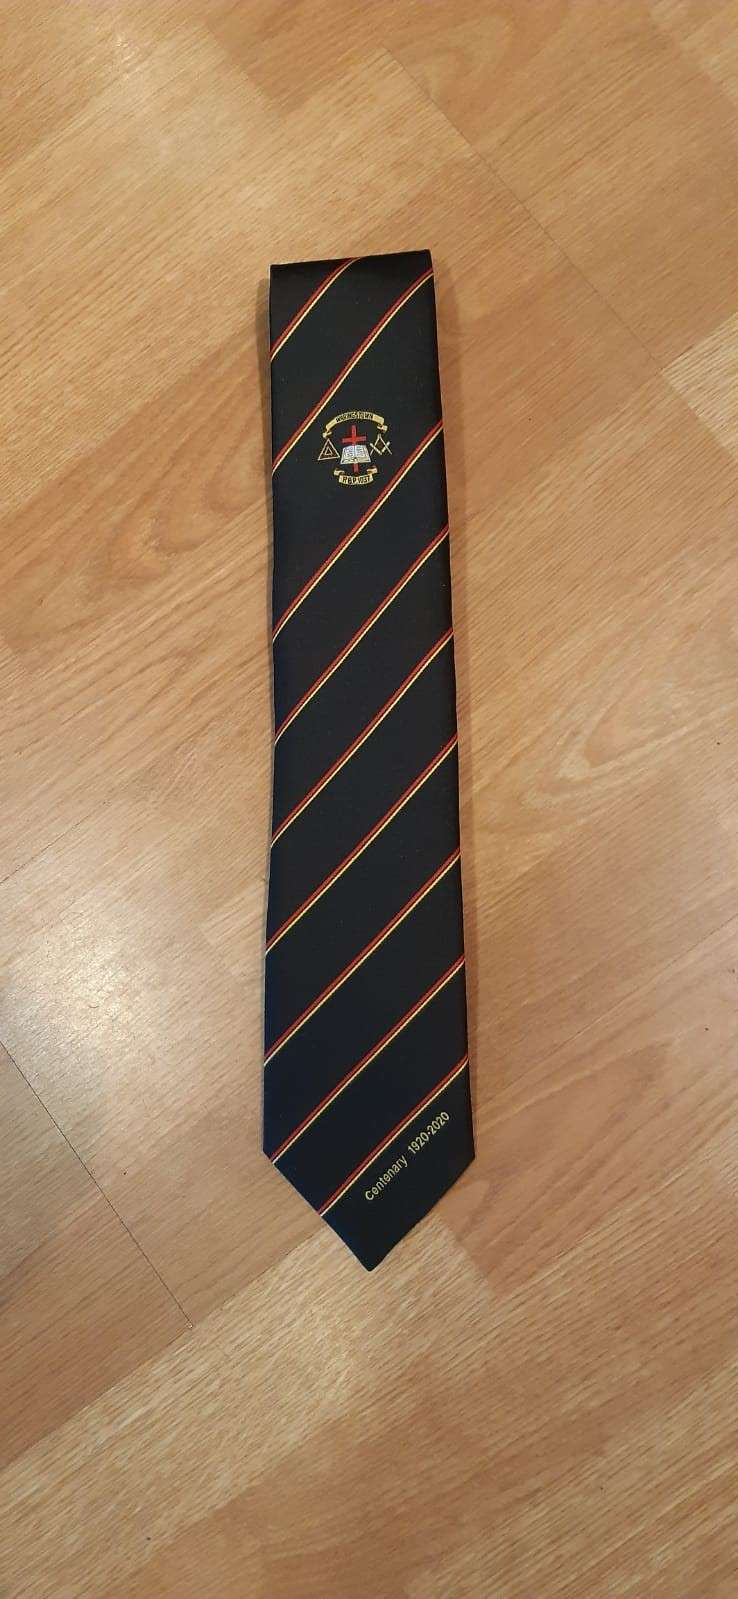 Ties - Banbridge Northern Ireland